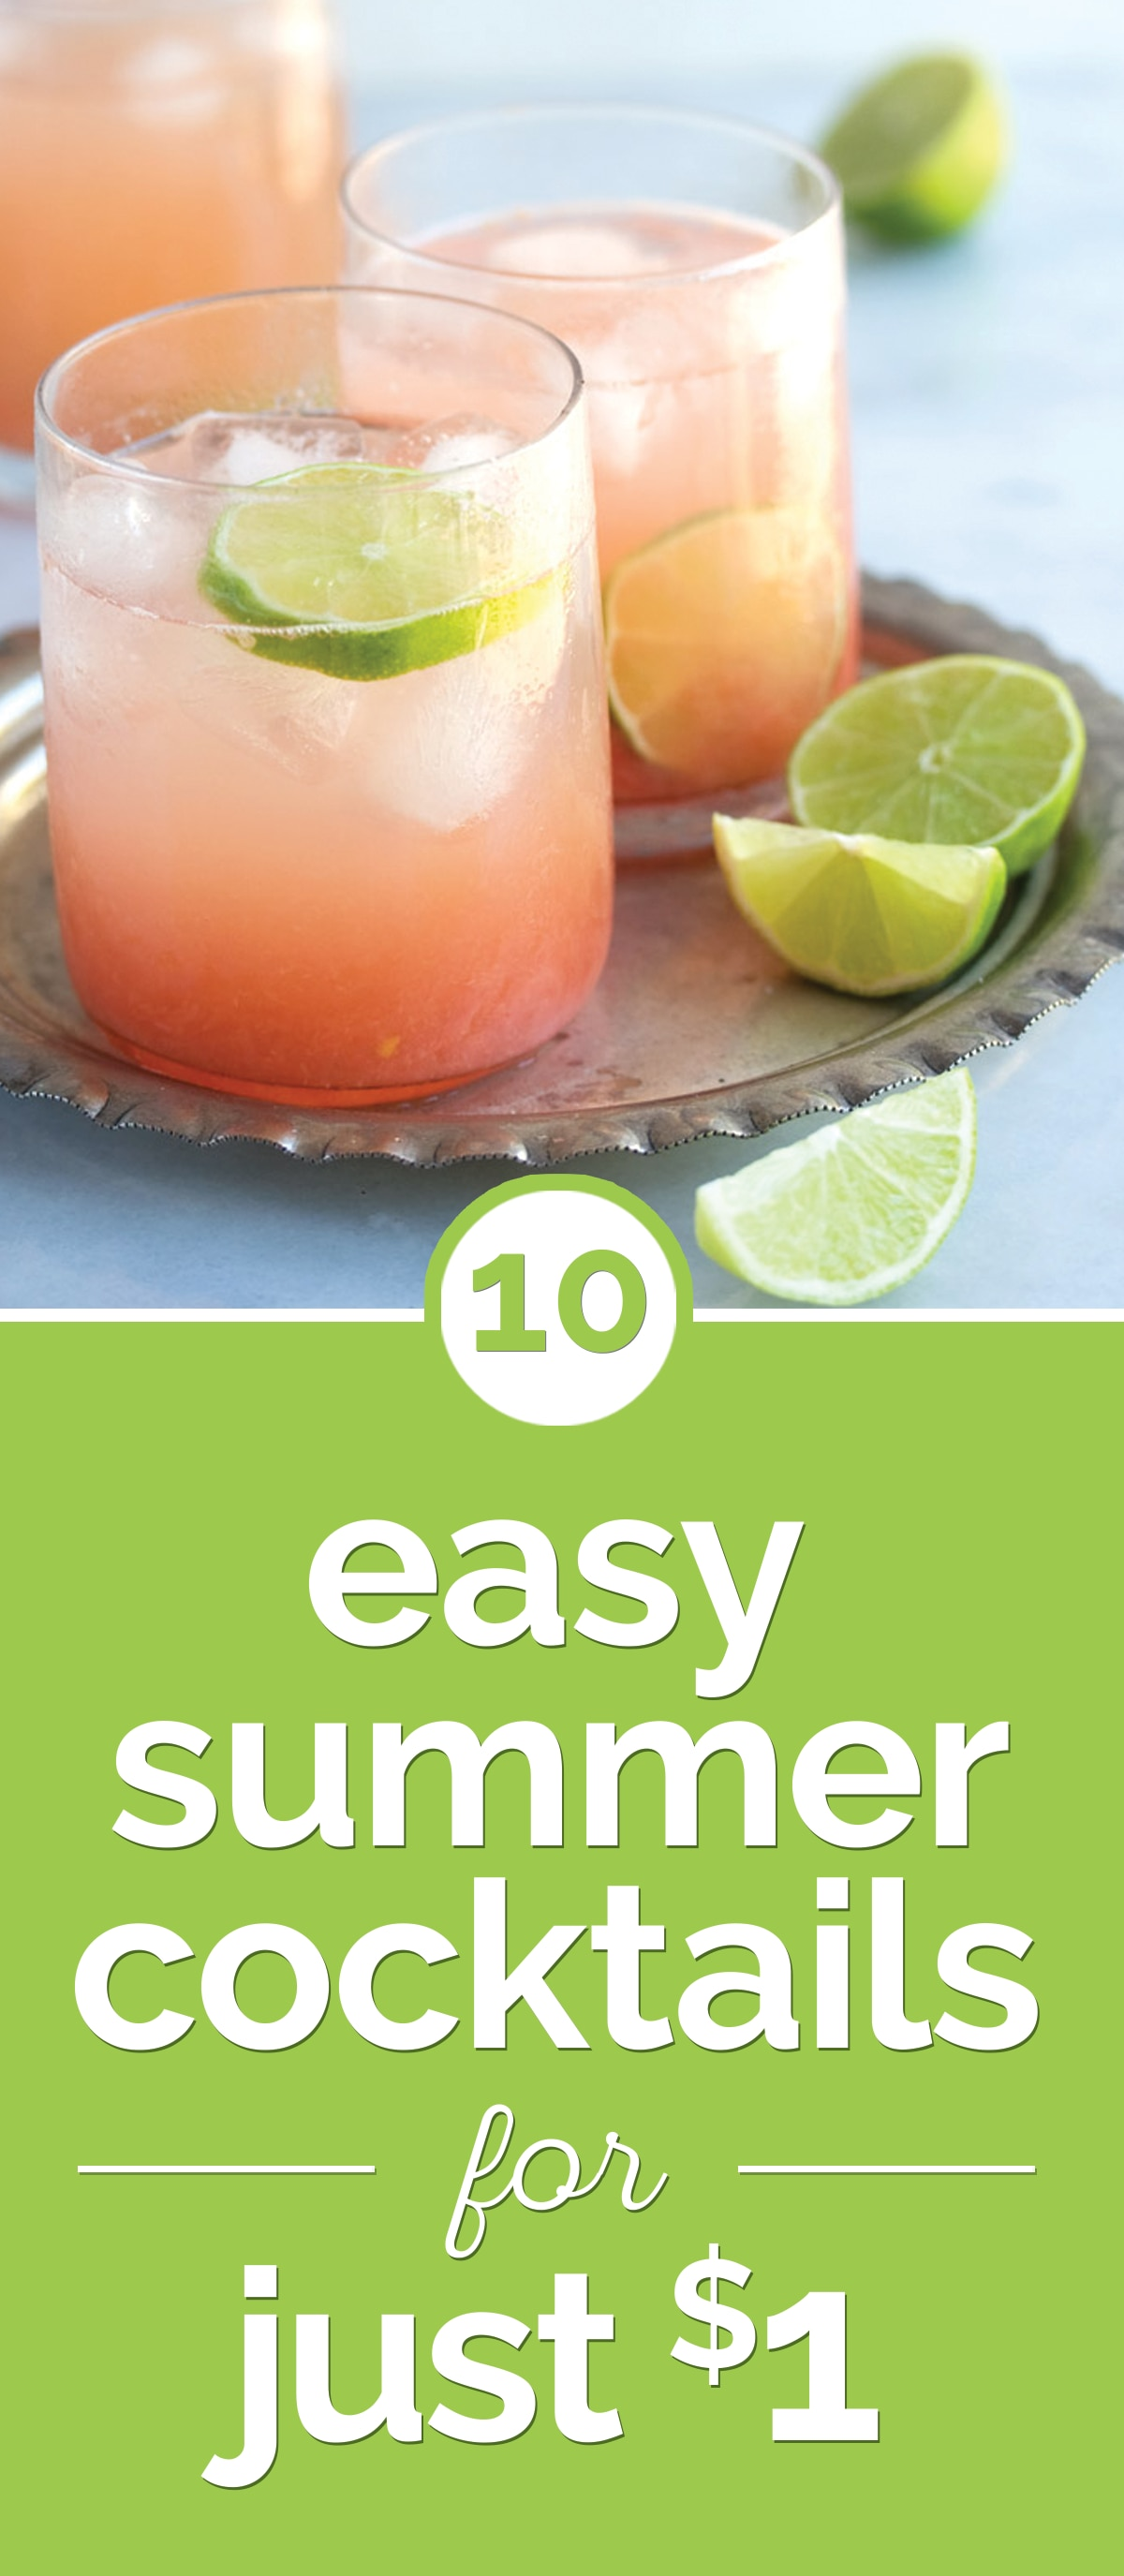 10 Easy Summer Cocktails for Just $1 | thegoodstuff